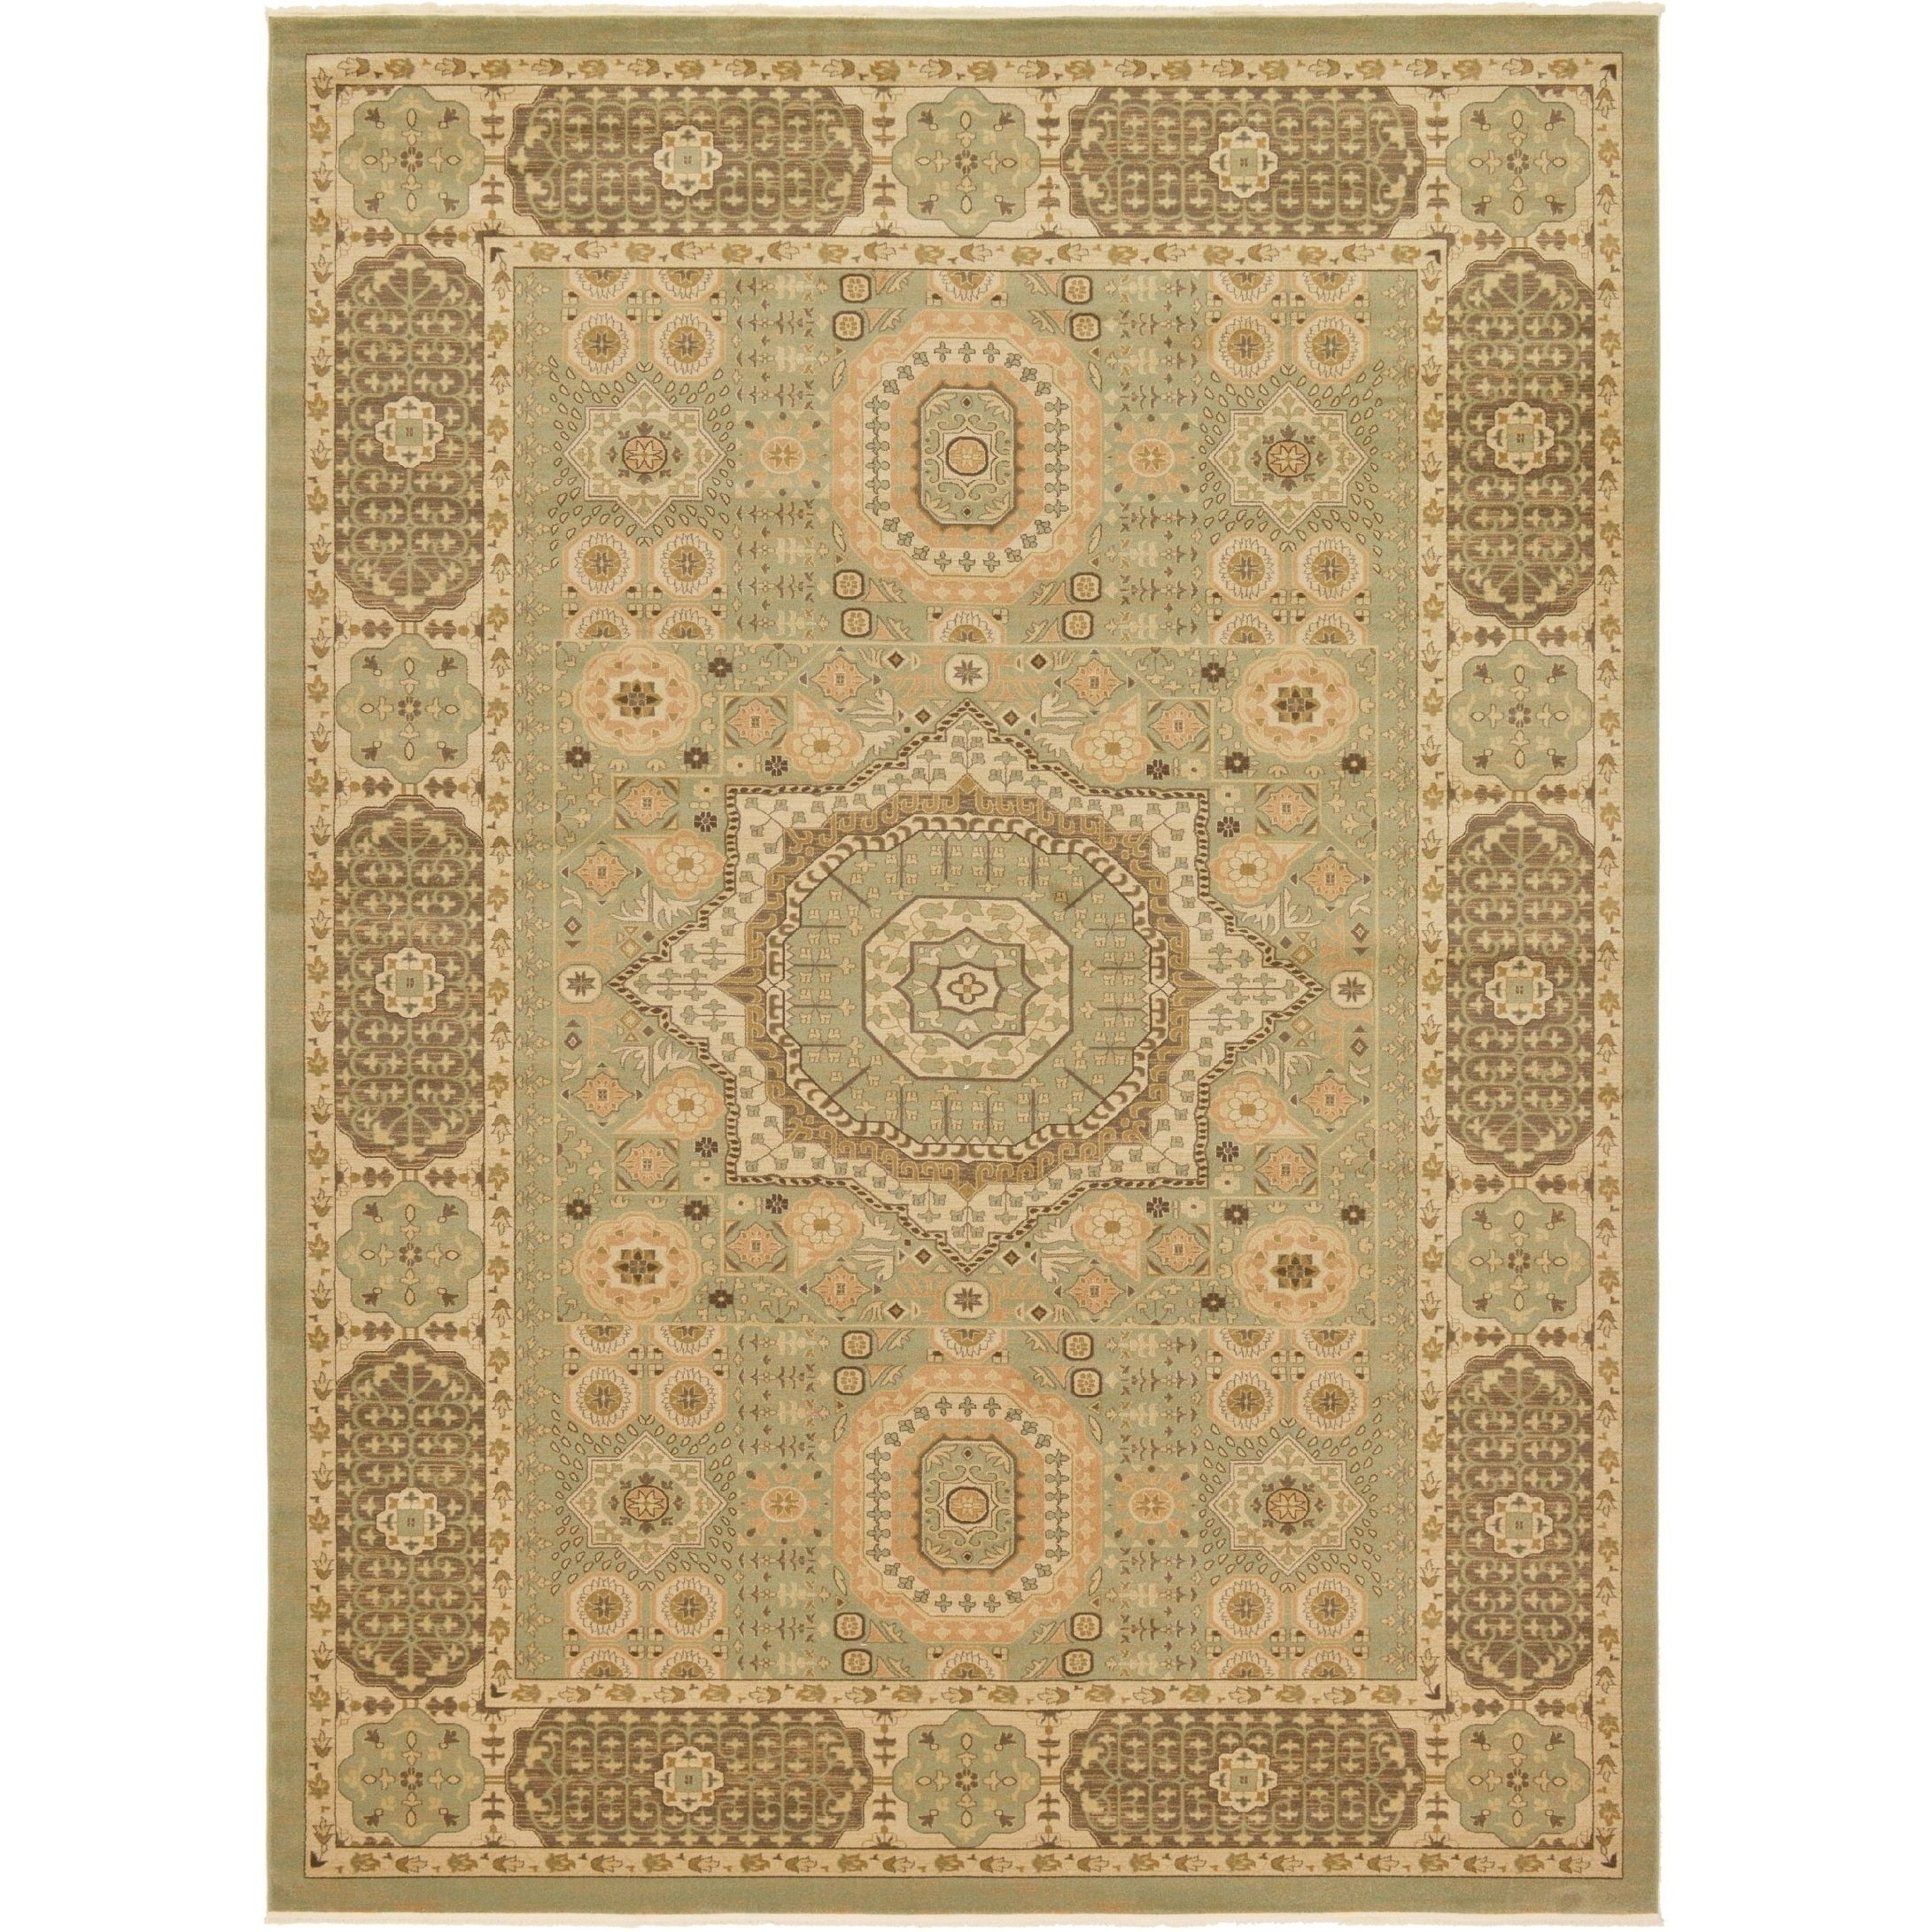 Unique Palace Light Green Beige Fl Indoor Outdoor Rectangular Area Rug 13